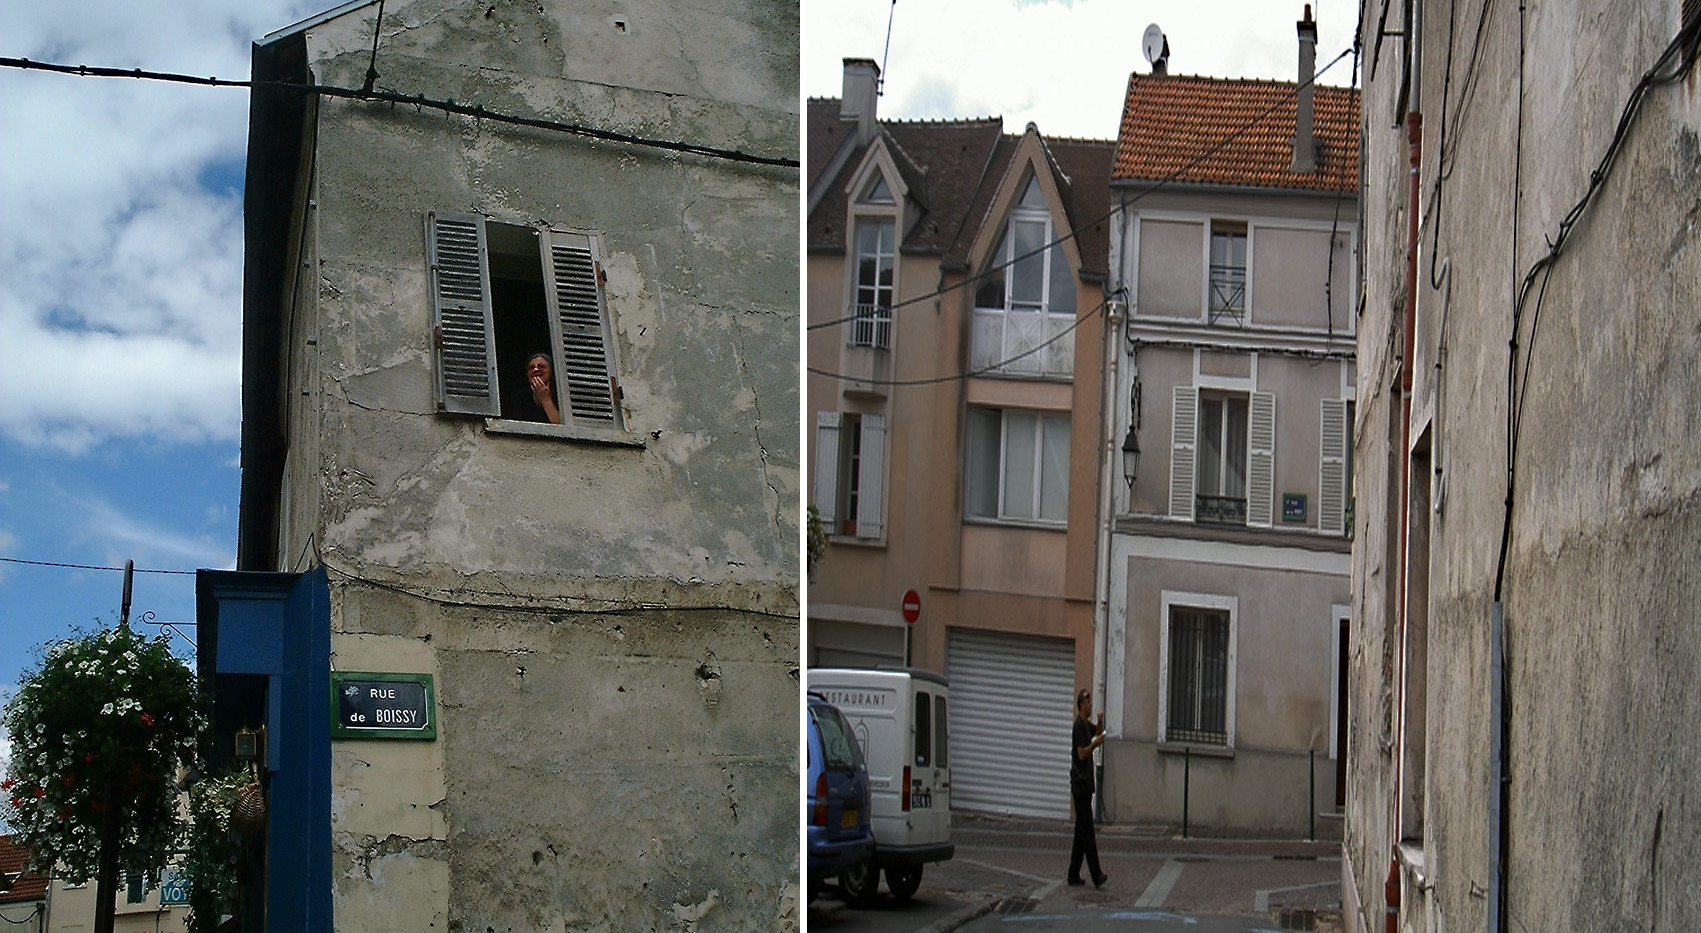 France - Village french woman in window split screen